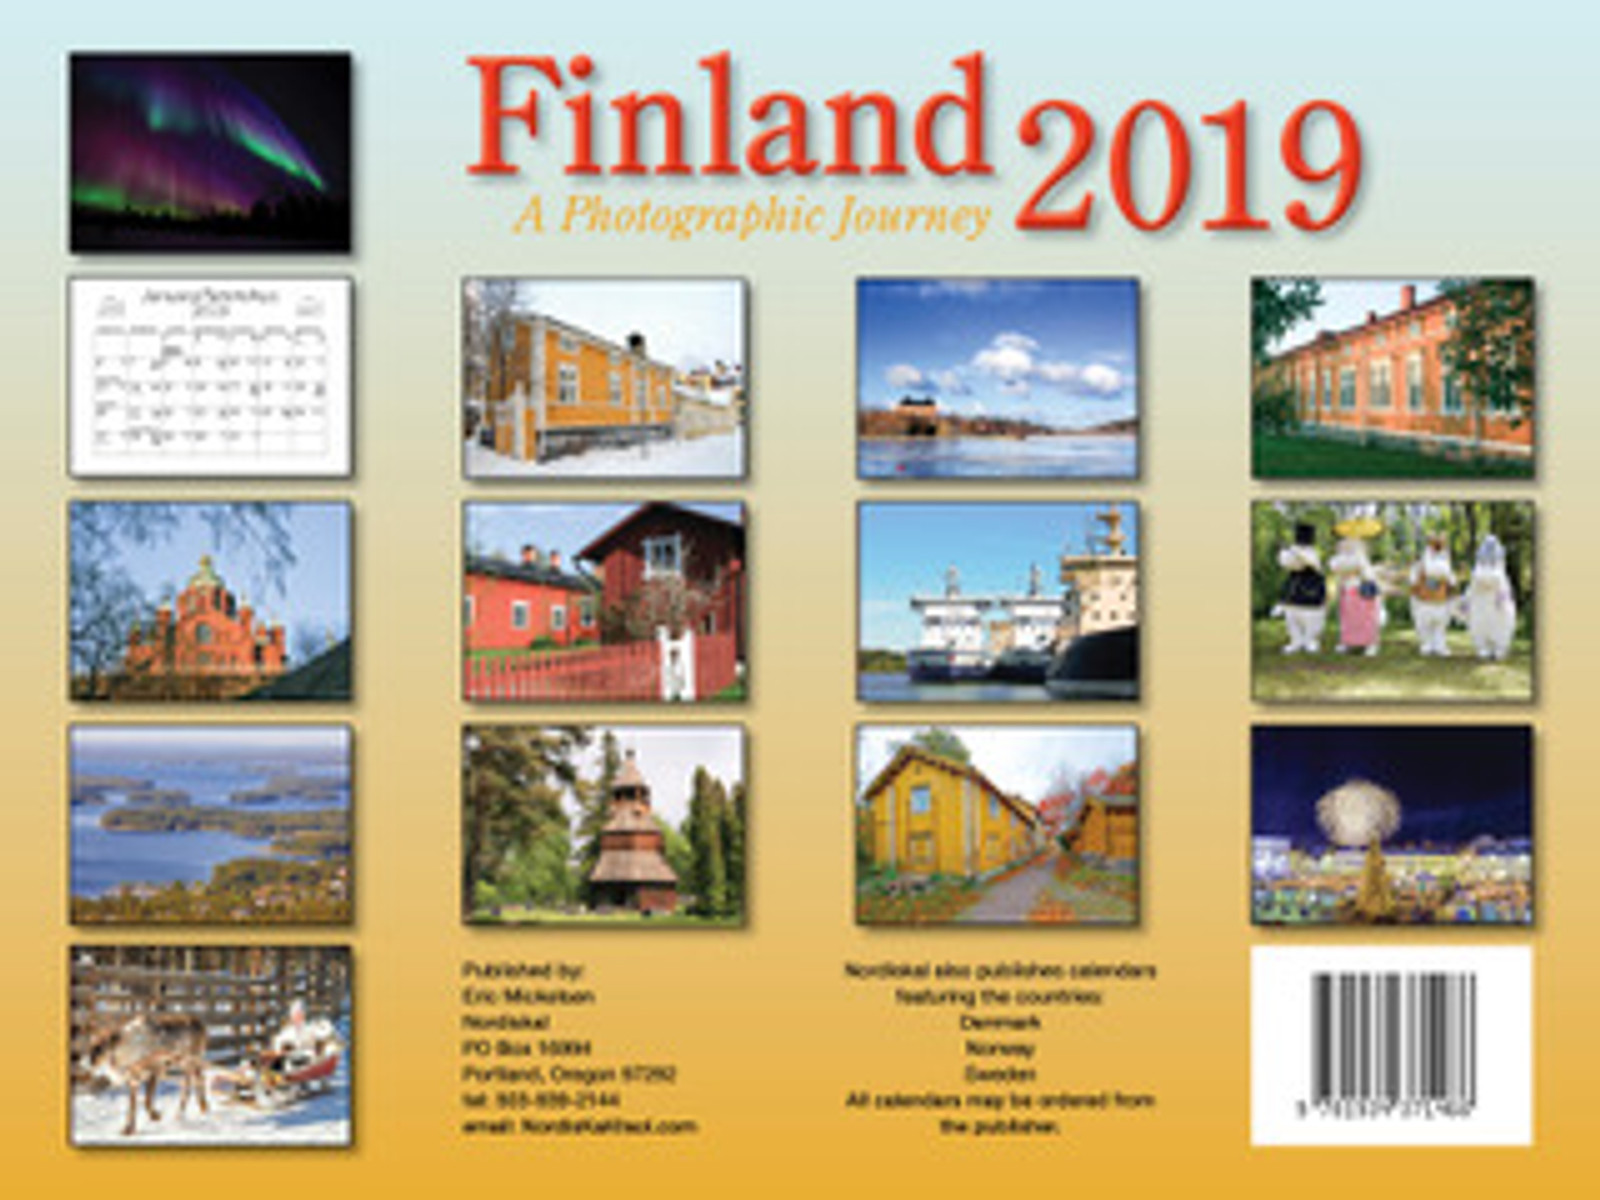 2019 Finland Calendar in Photographs - Nordiskal Back Cover